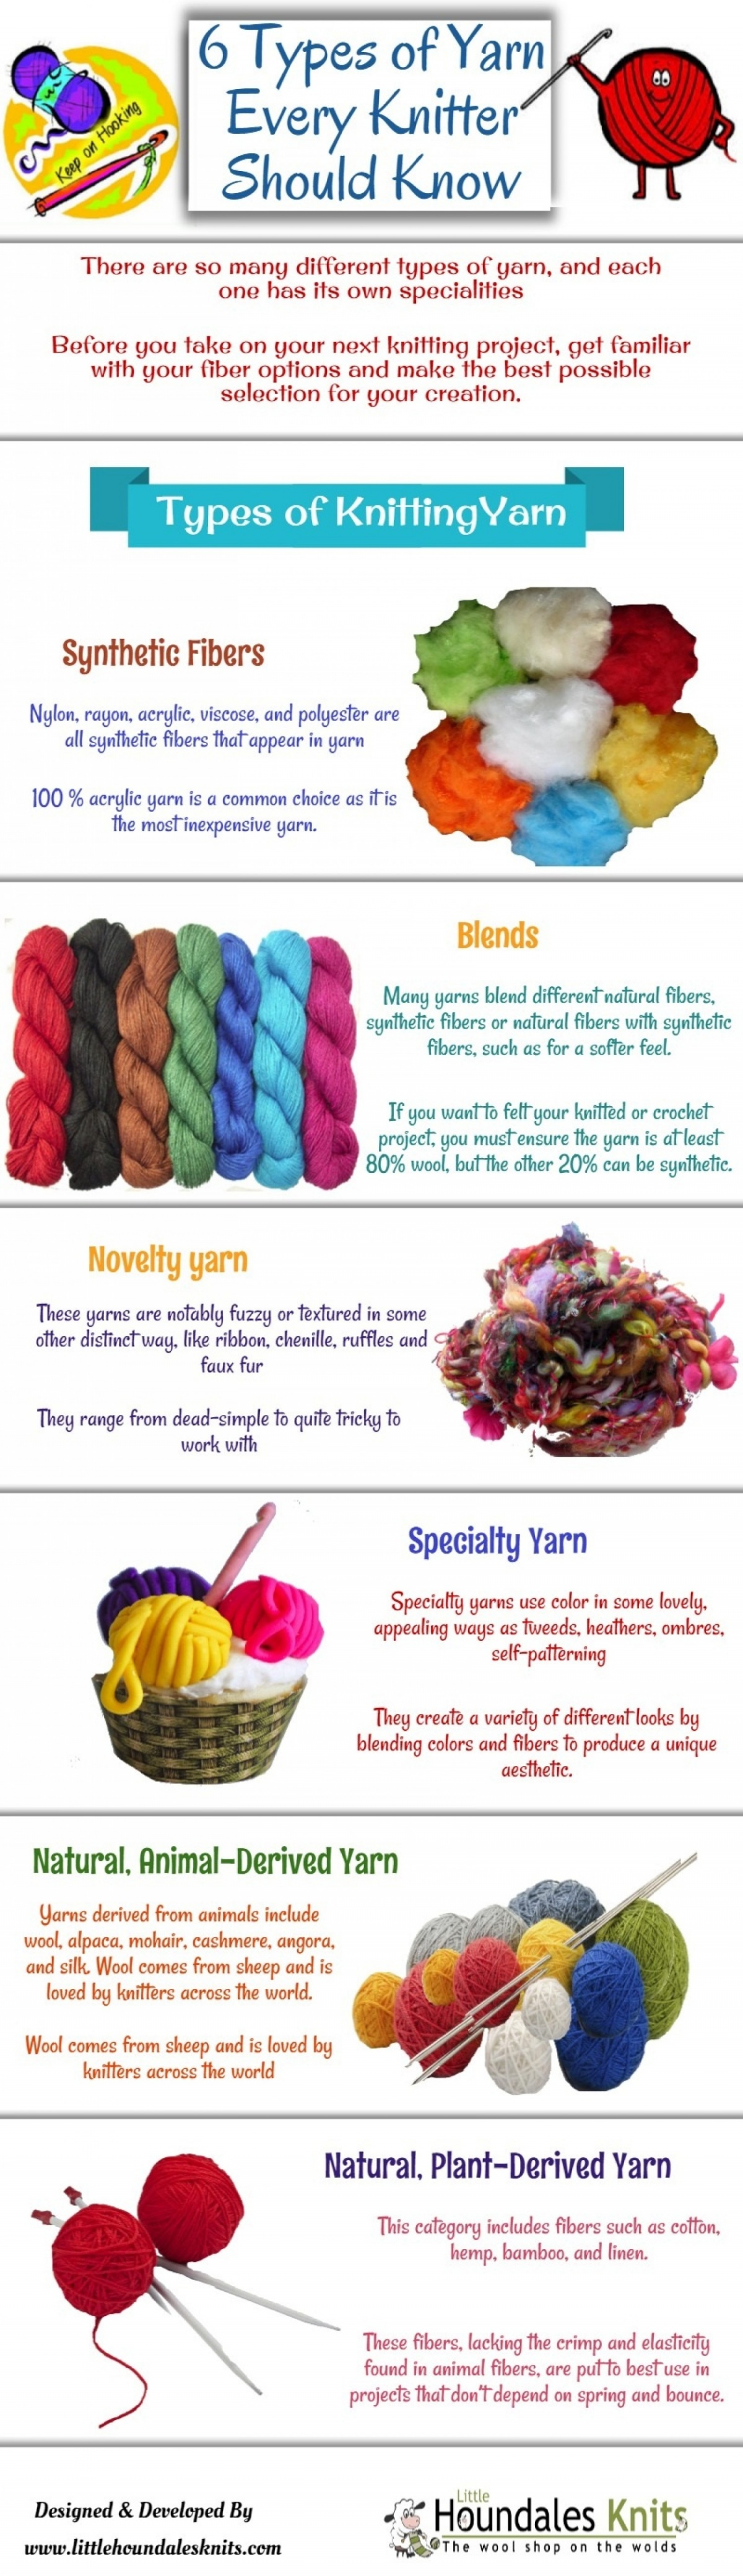 6 Types Of Yarn Every Knitter Should Know